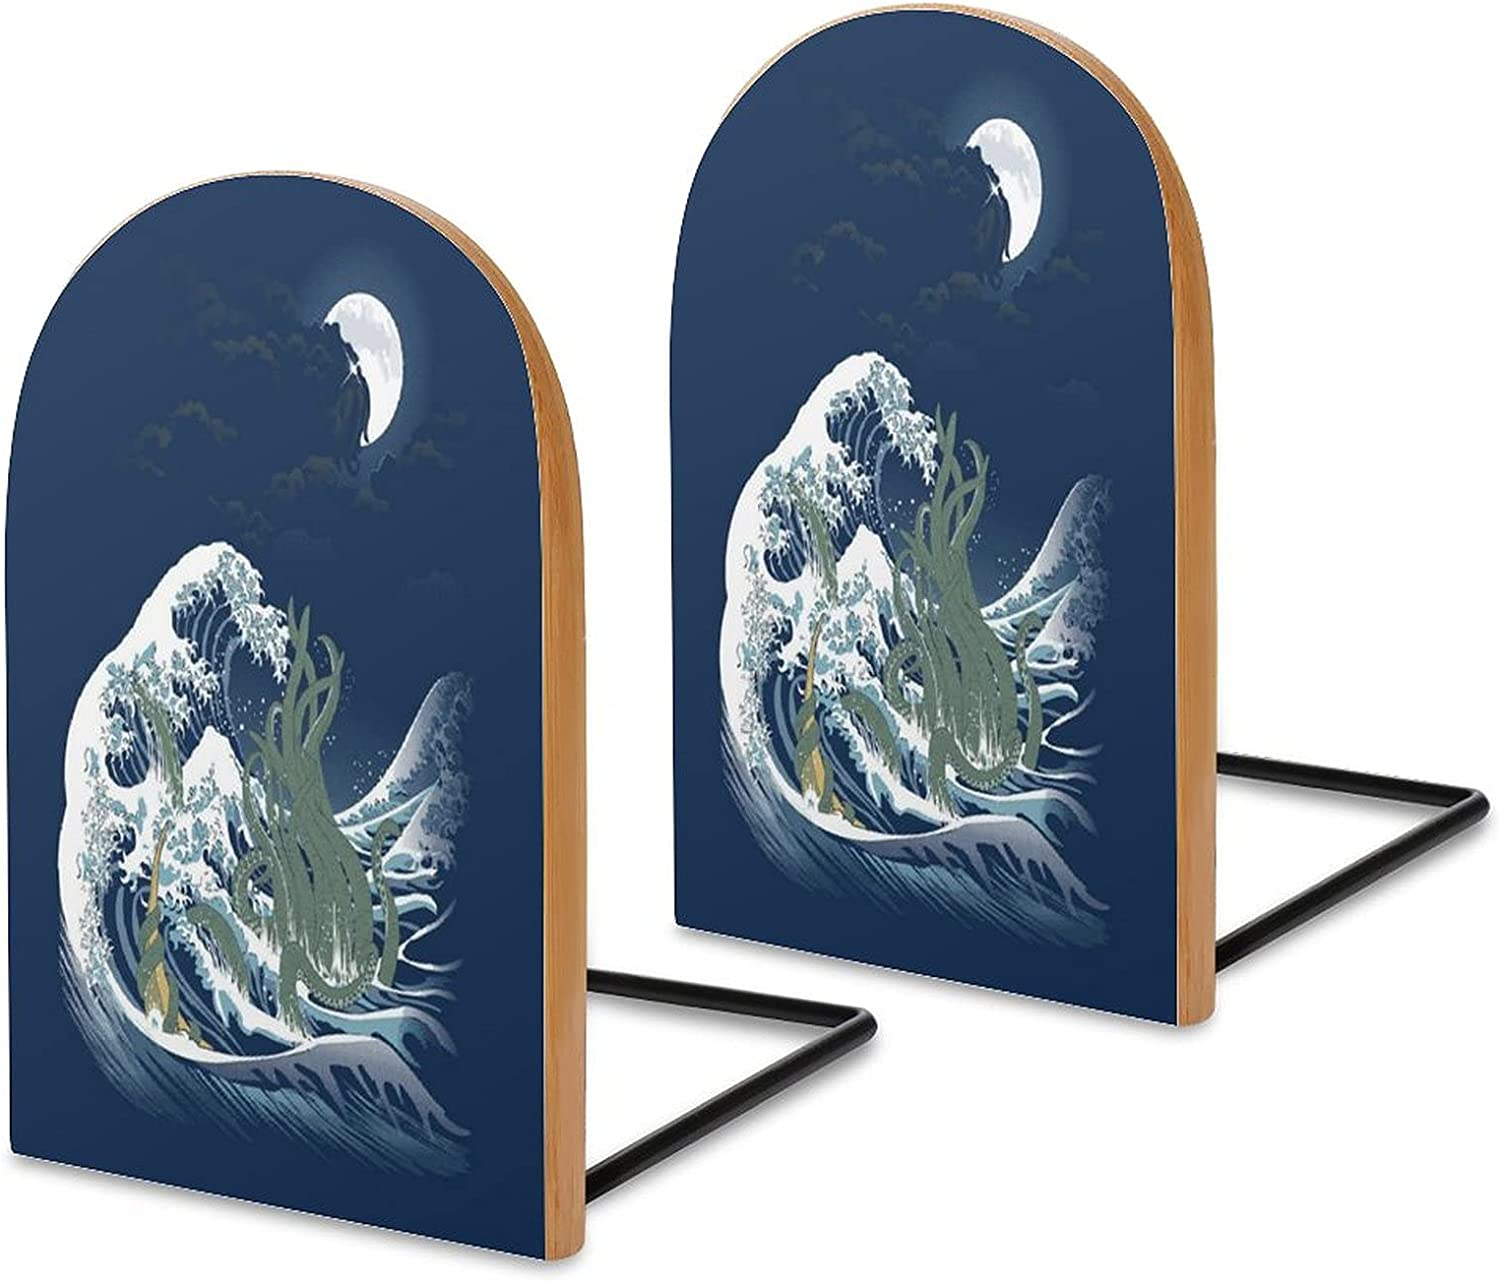 The Wave Off R Lyeh The Call Of Cthulhu H P Lovecraft Great Wave Of Kanagawa Bookshelves, decorative bookshelves Wooden office bookends, bookshelves for thick books, family bookends 5 x 3 in (pair/two